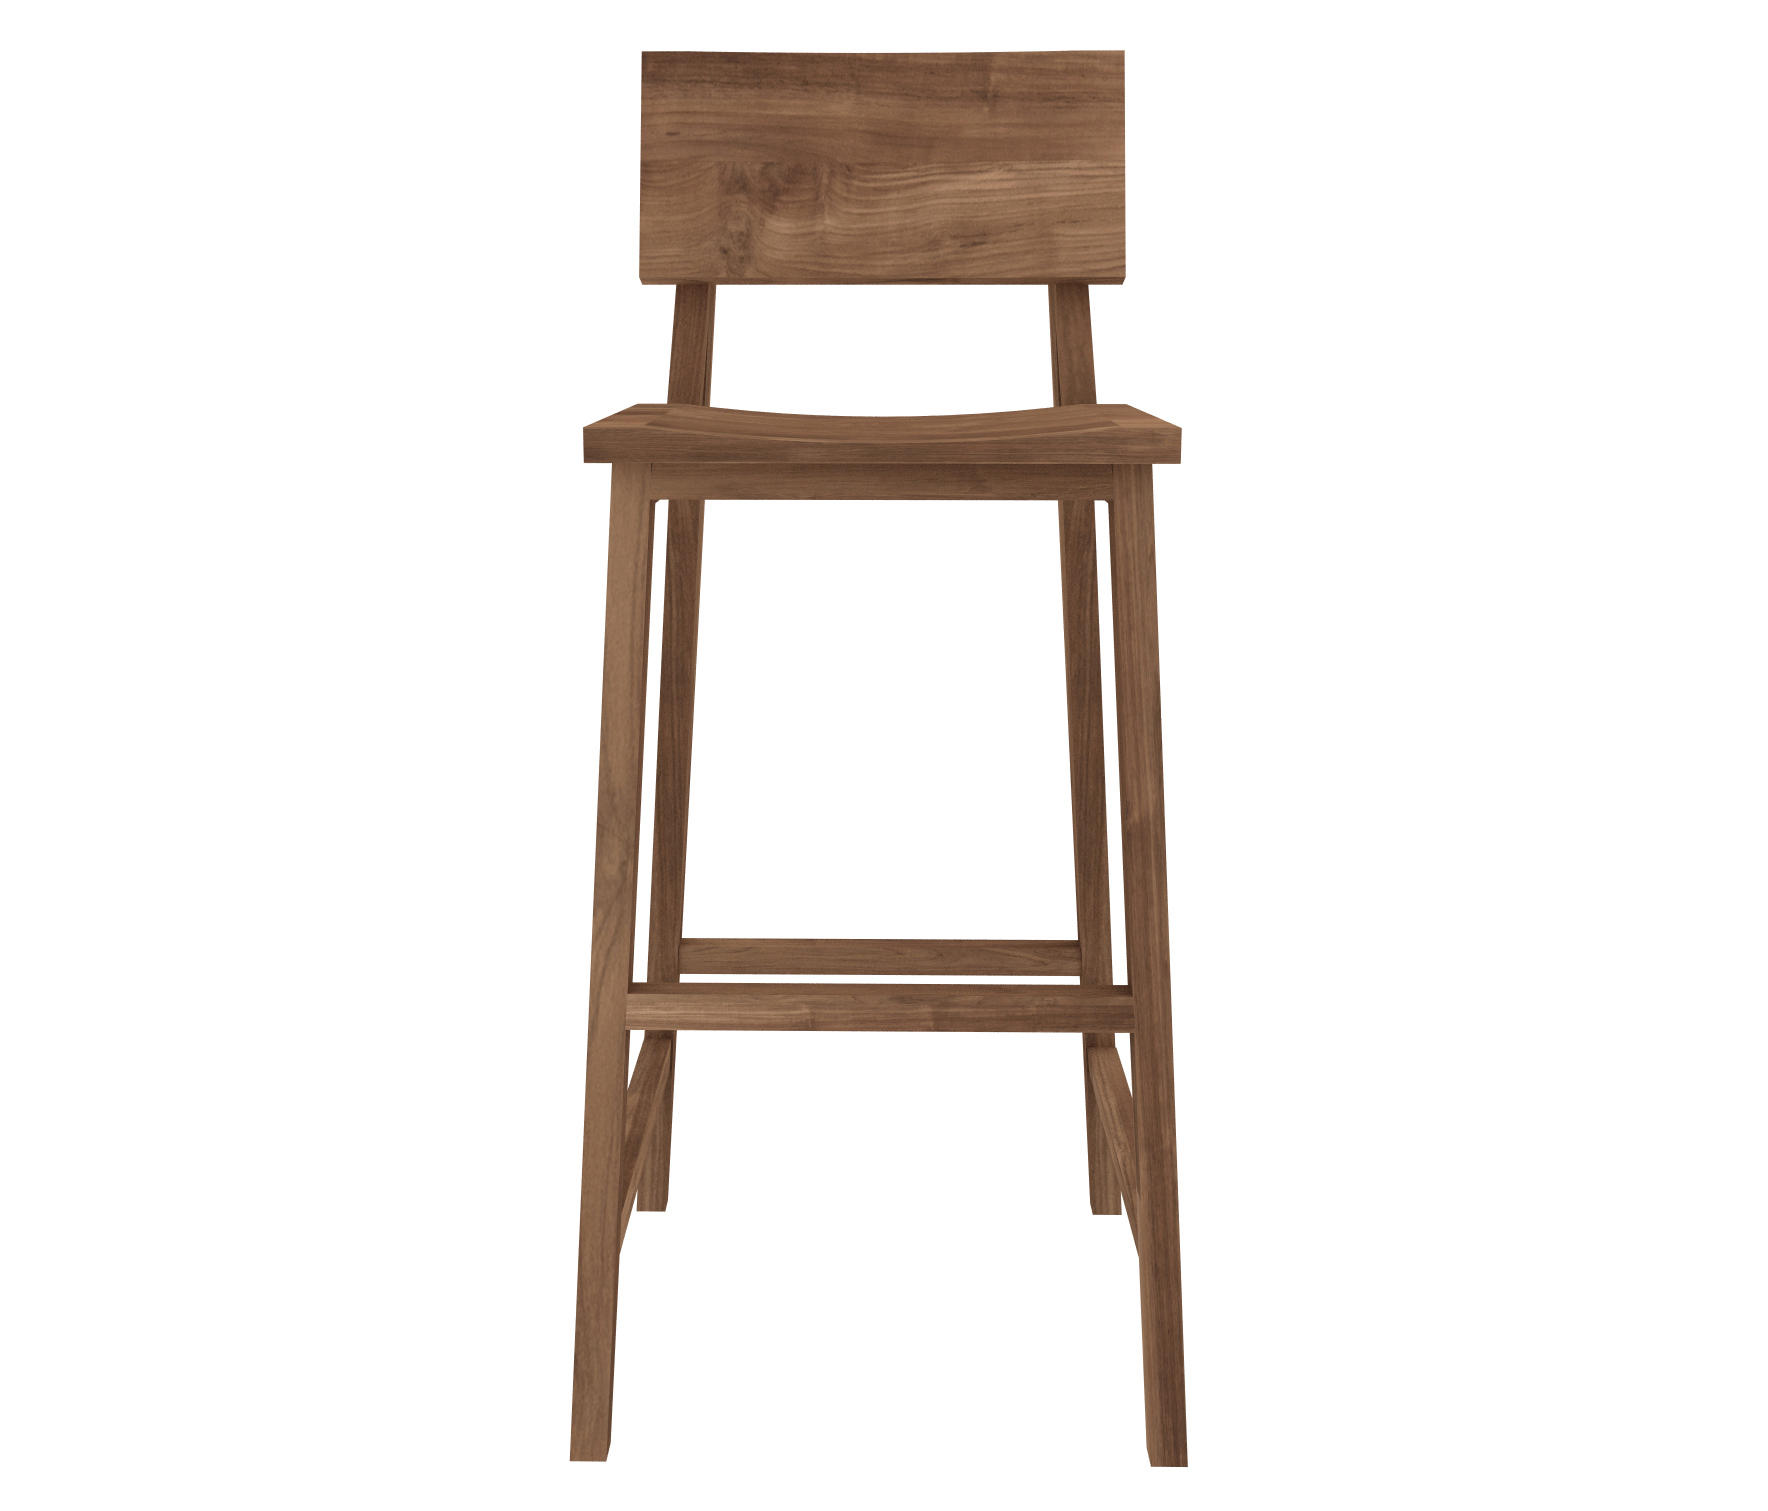 Teak N4 High Chair By Ethnicraft Bar Stools